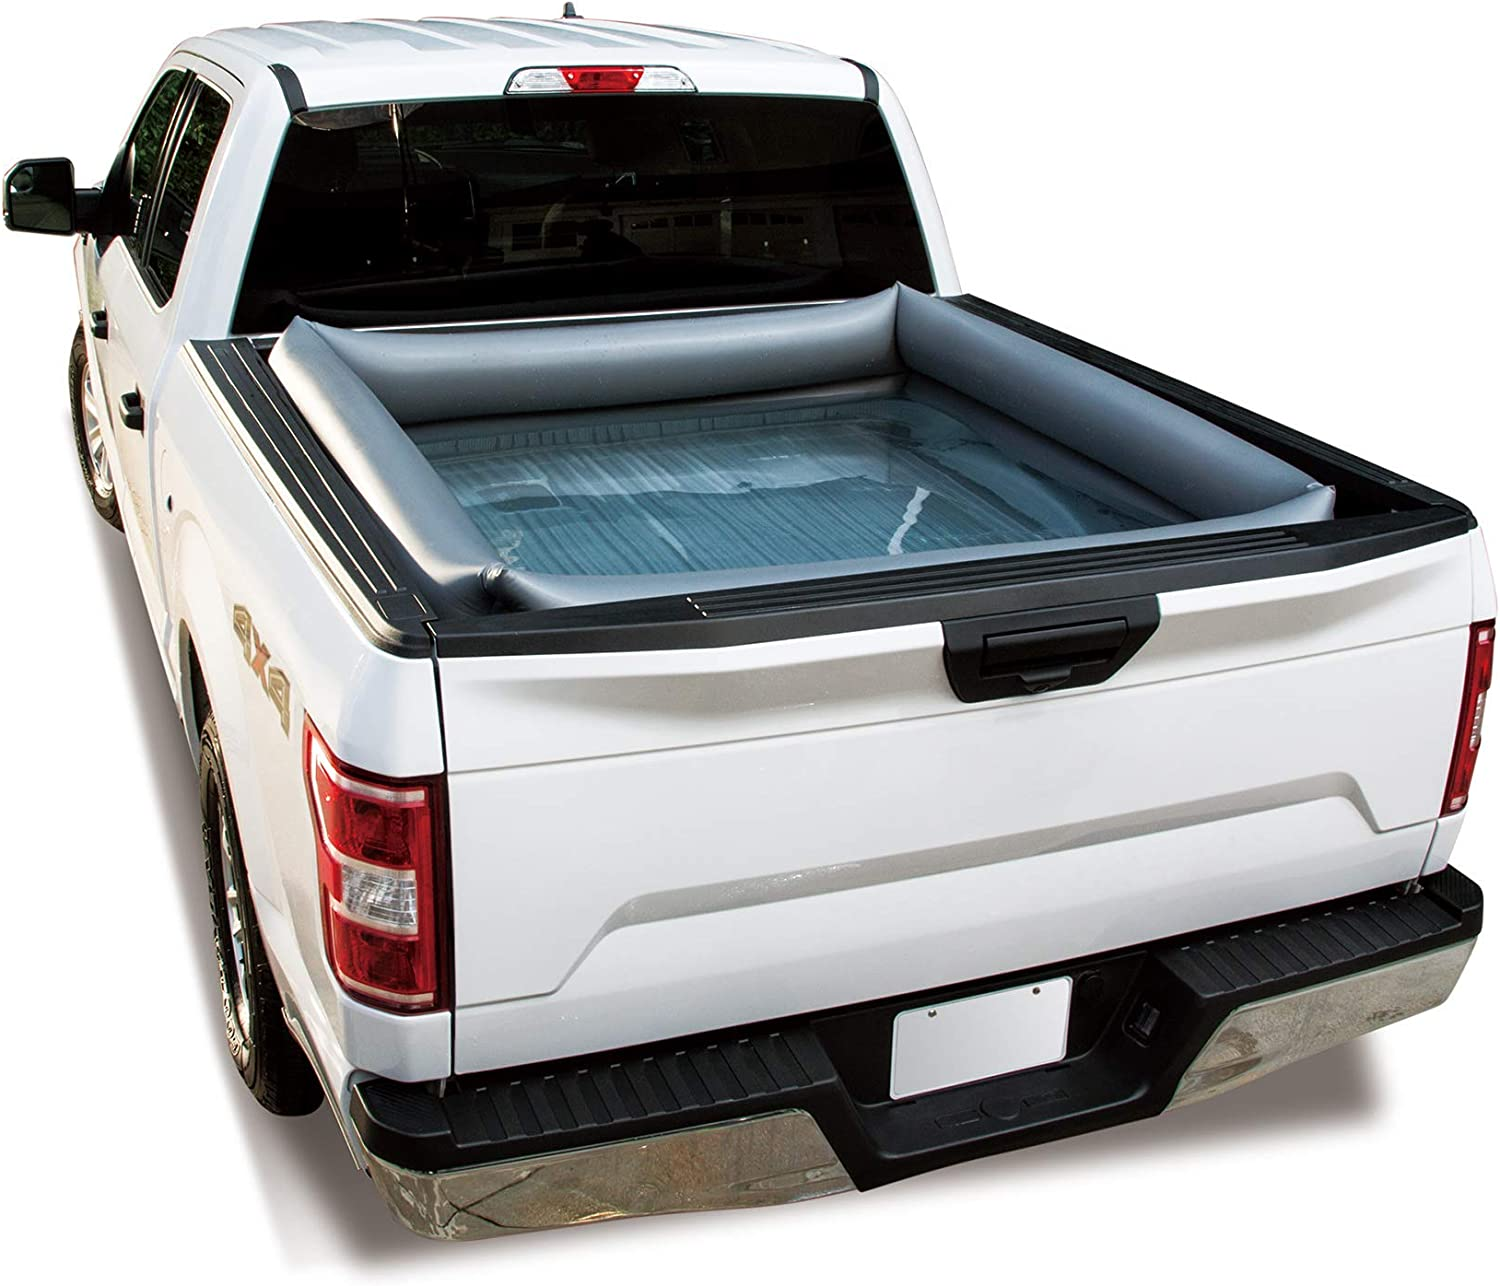 Gard Summer Waves Inflatable Truck Bed Pool 66 X62 X21 Cargo Management Amazon Canada